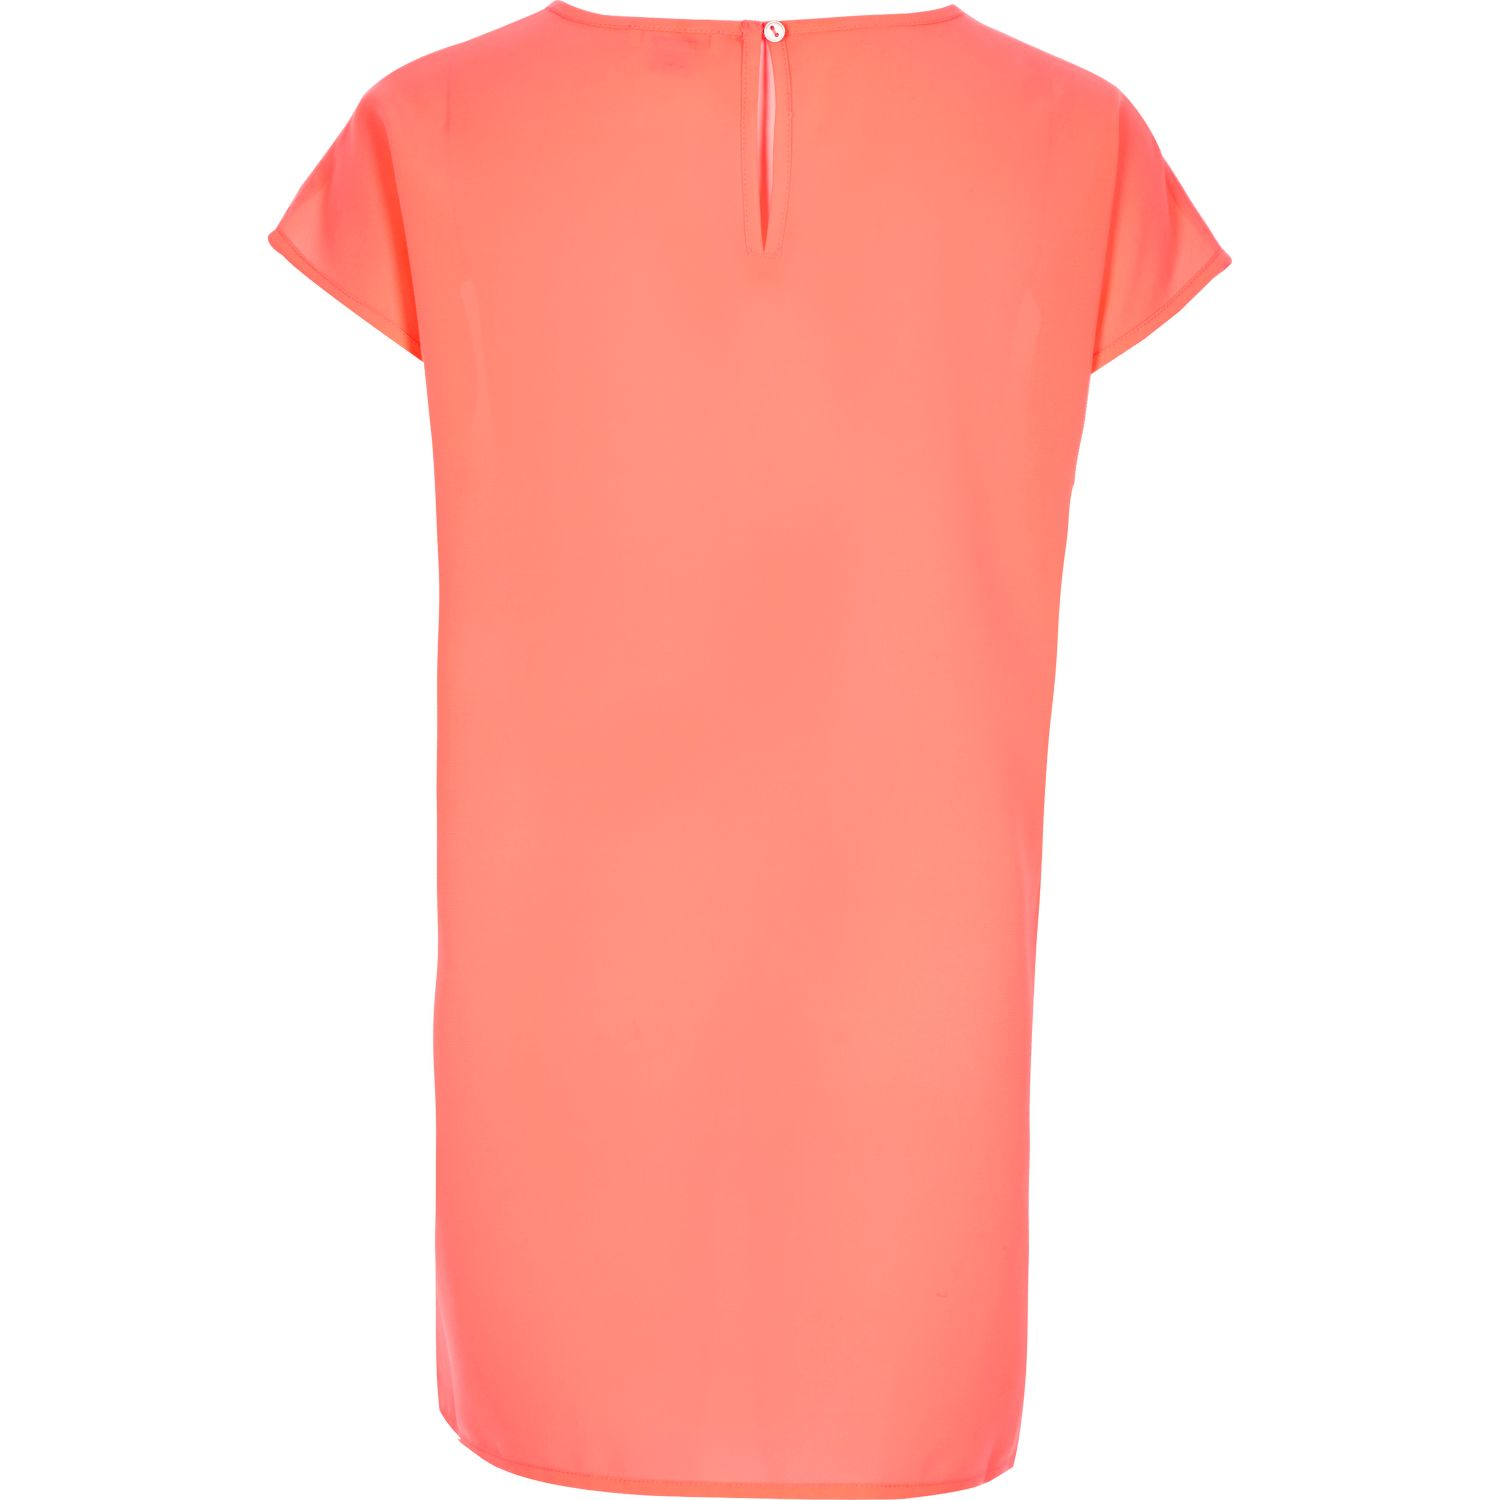 River Island Girls Coral Pink Longline T-shirt In